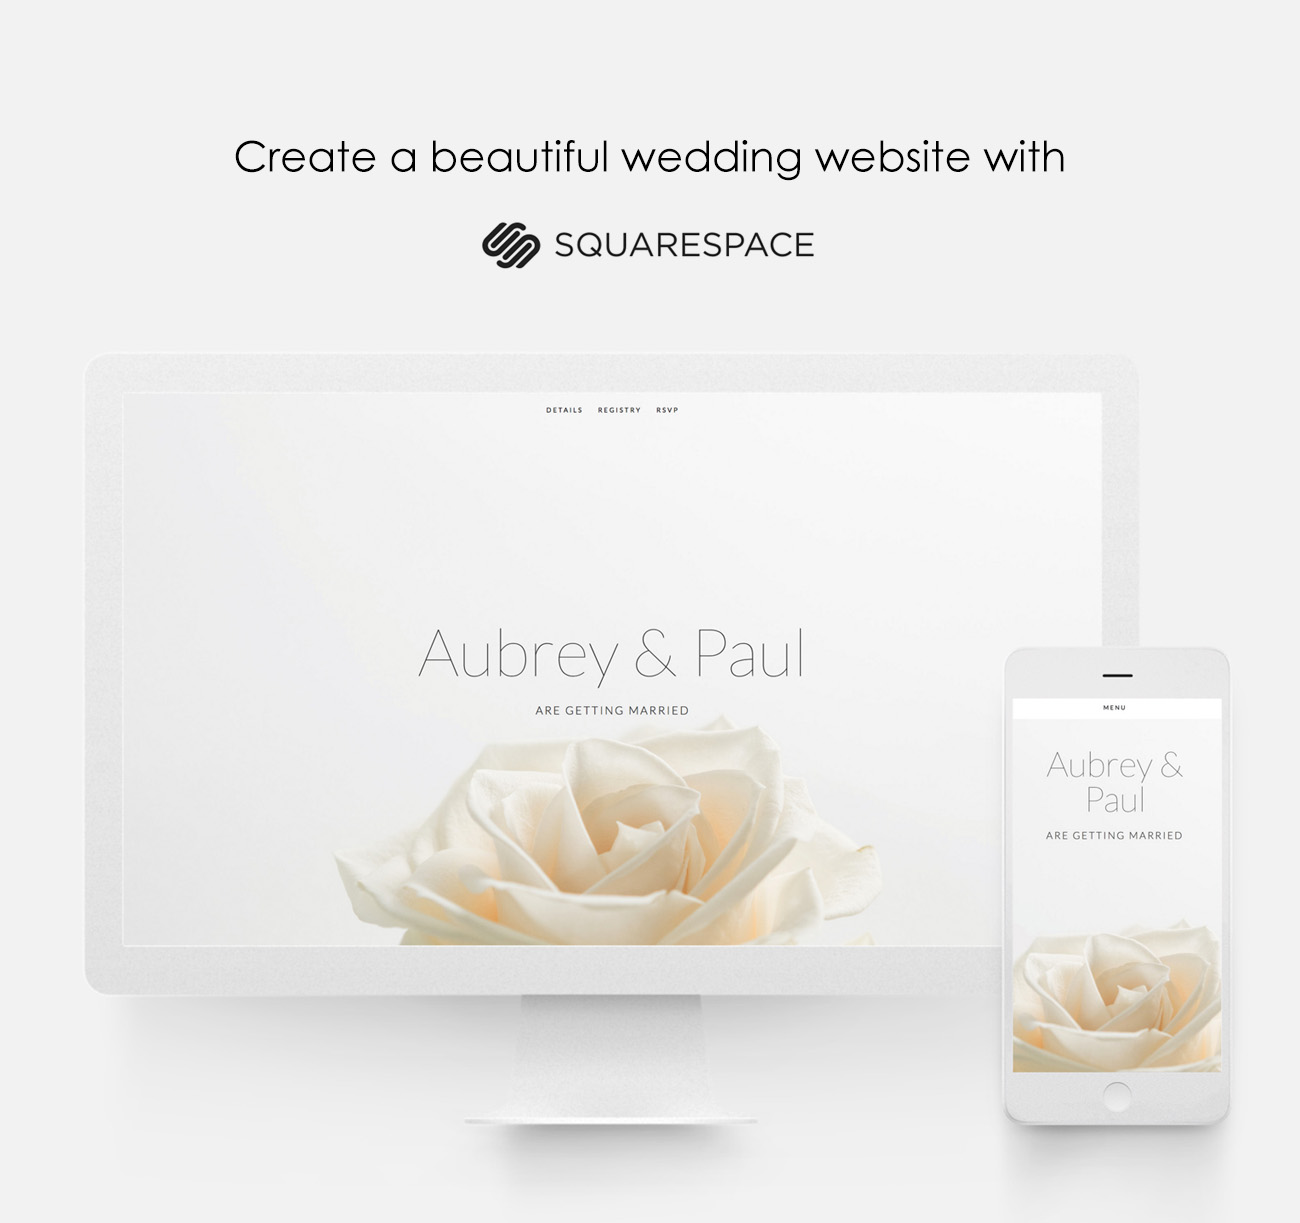 squarespace for your wedding website